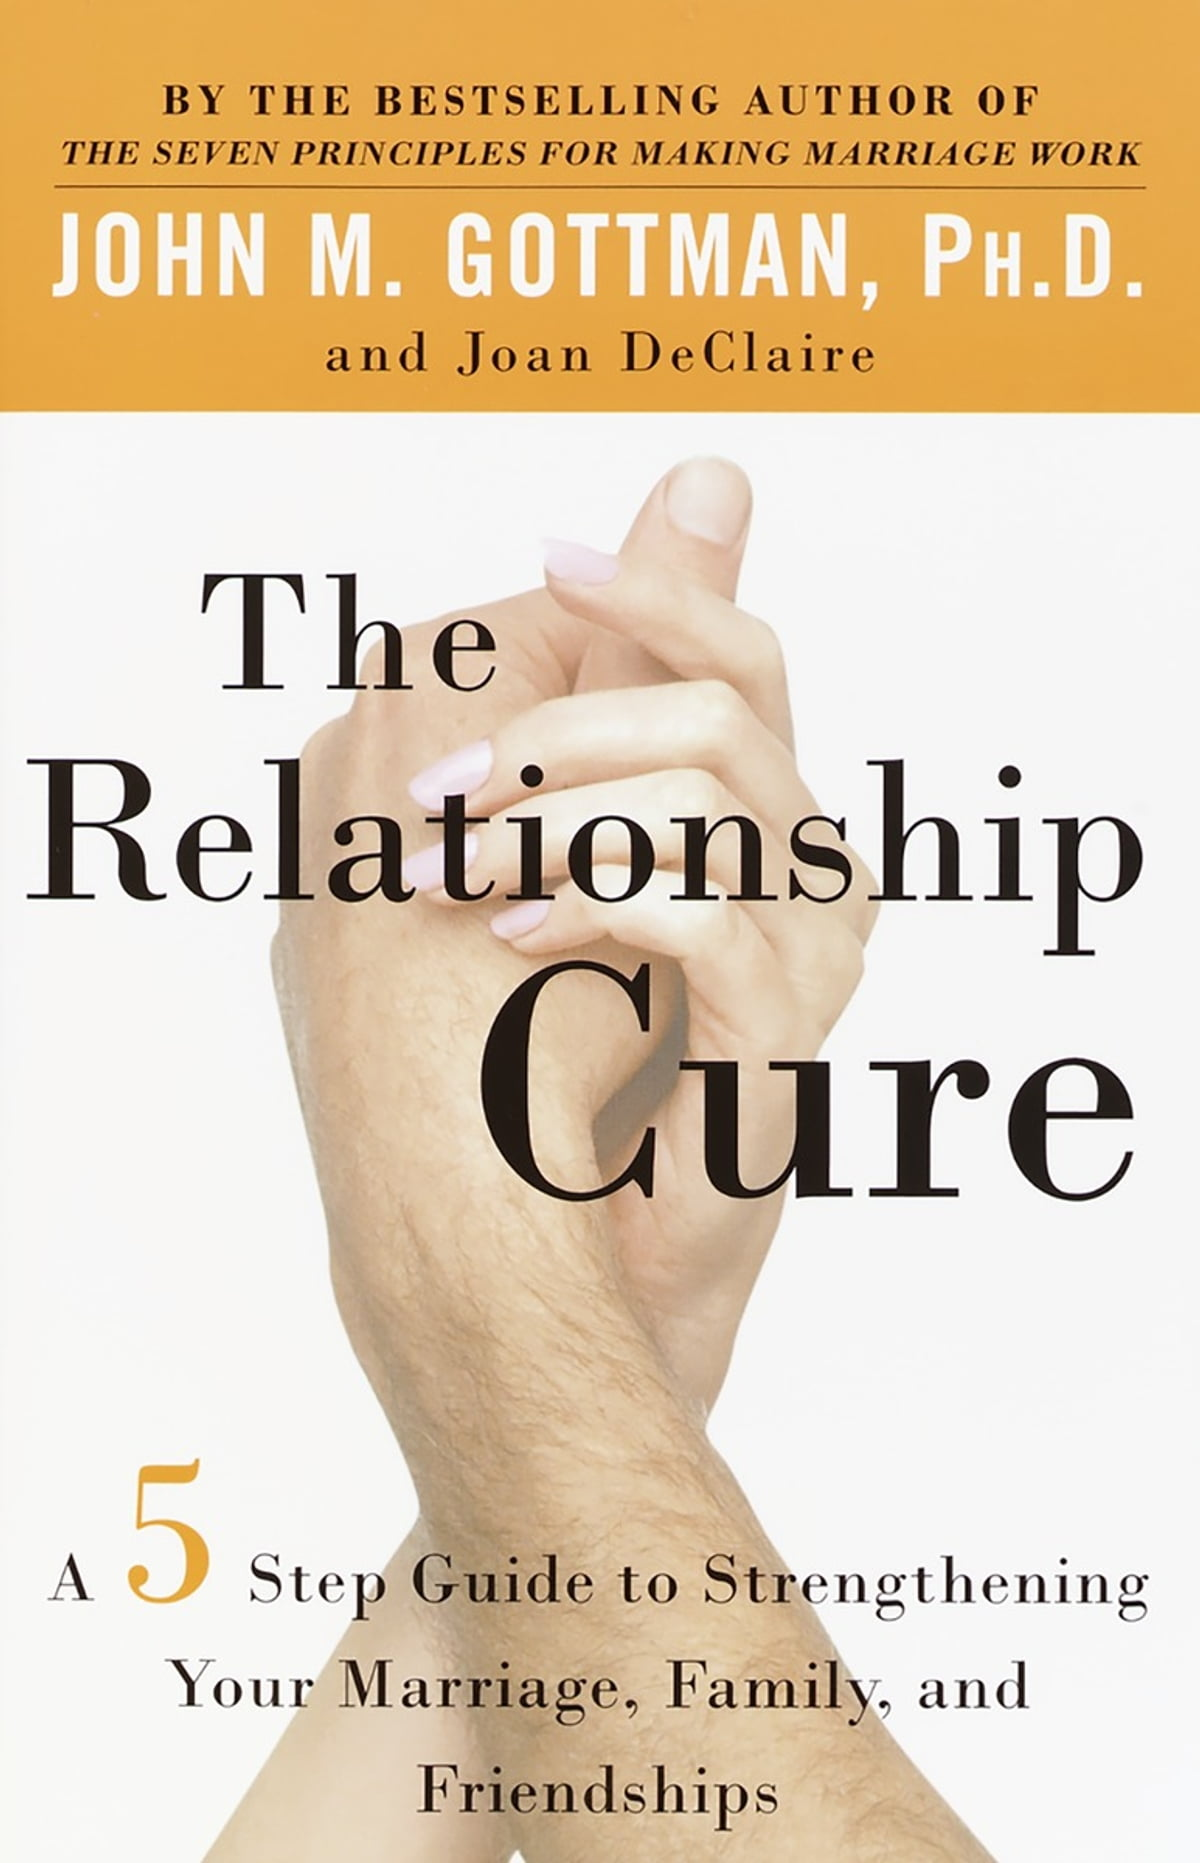 The Relationship Cure  A 5 Step Guide To Strengthening Your Marriage,  Family, And